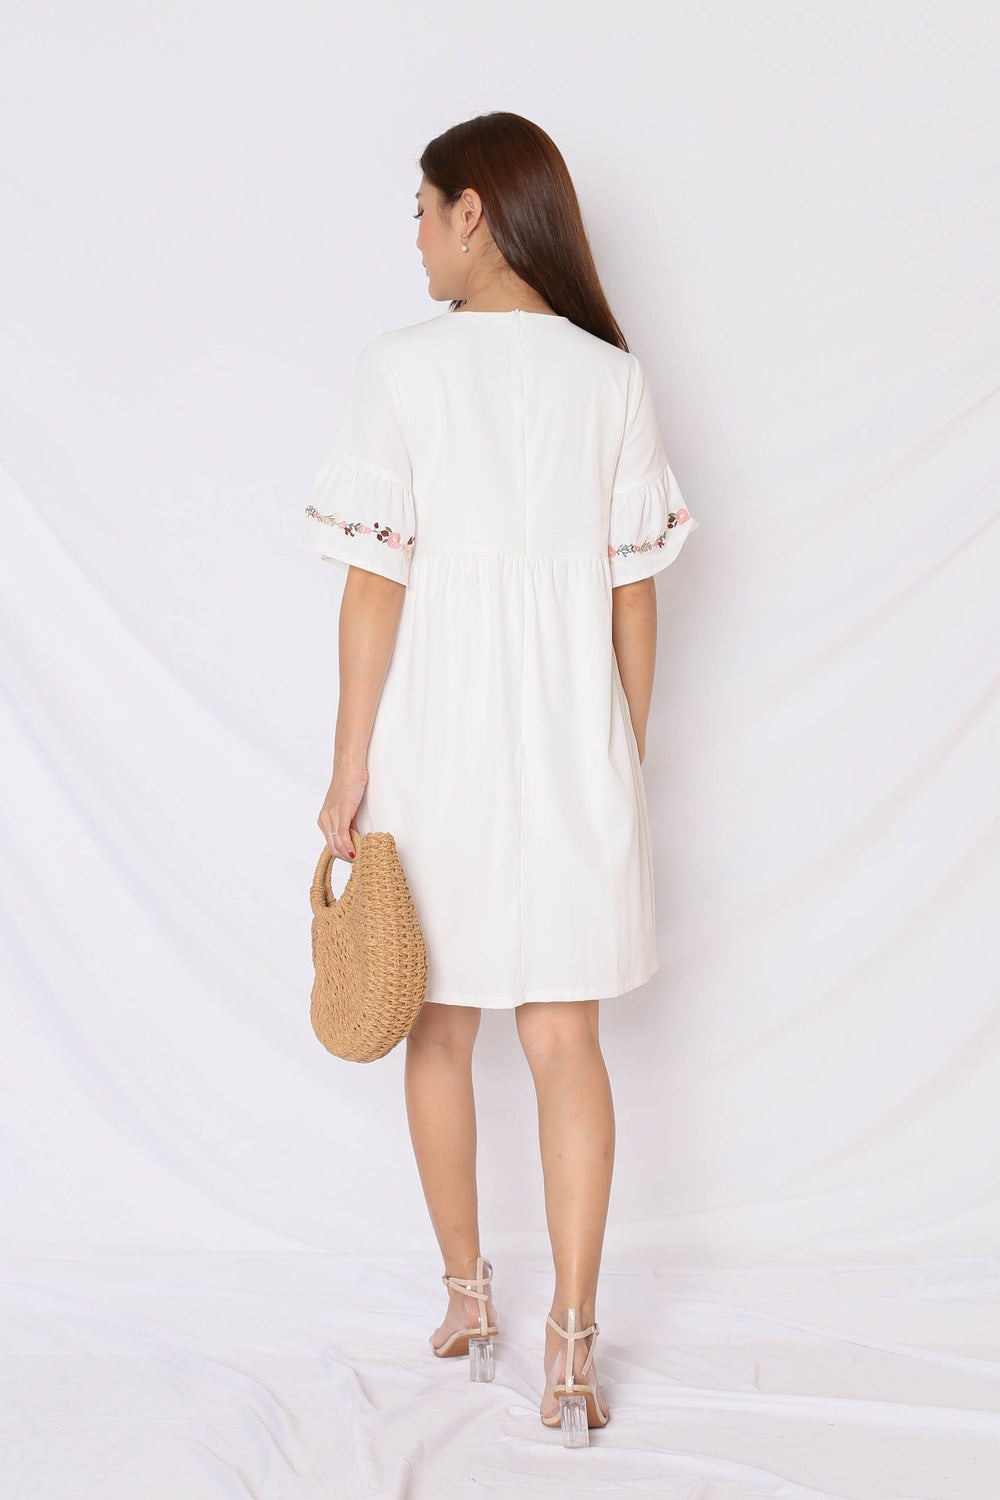 (PREMIUM) GYPSY EMBROIDERY TASSEL DRESS IN WHITE